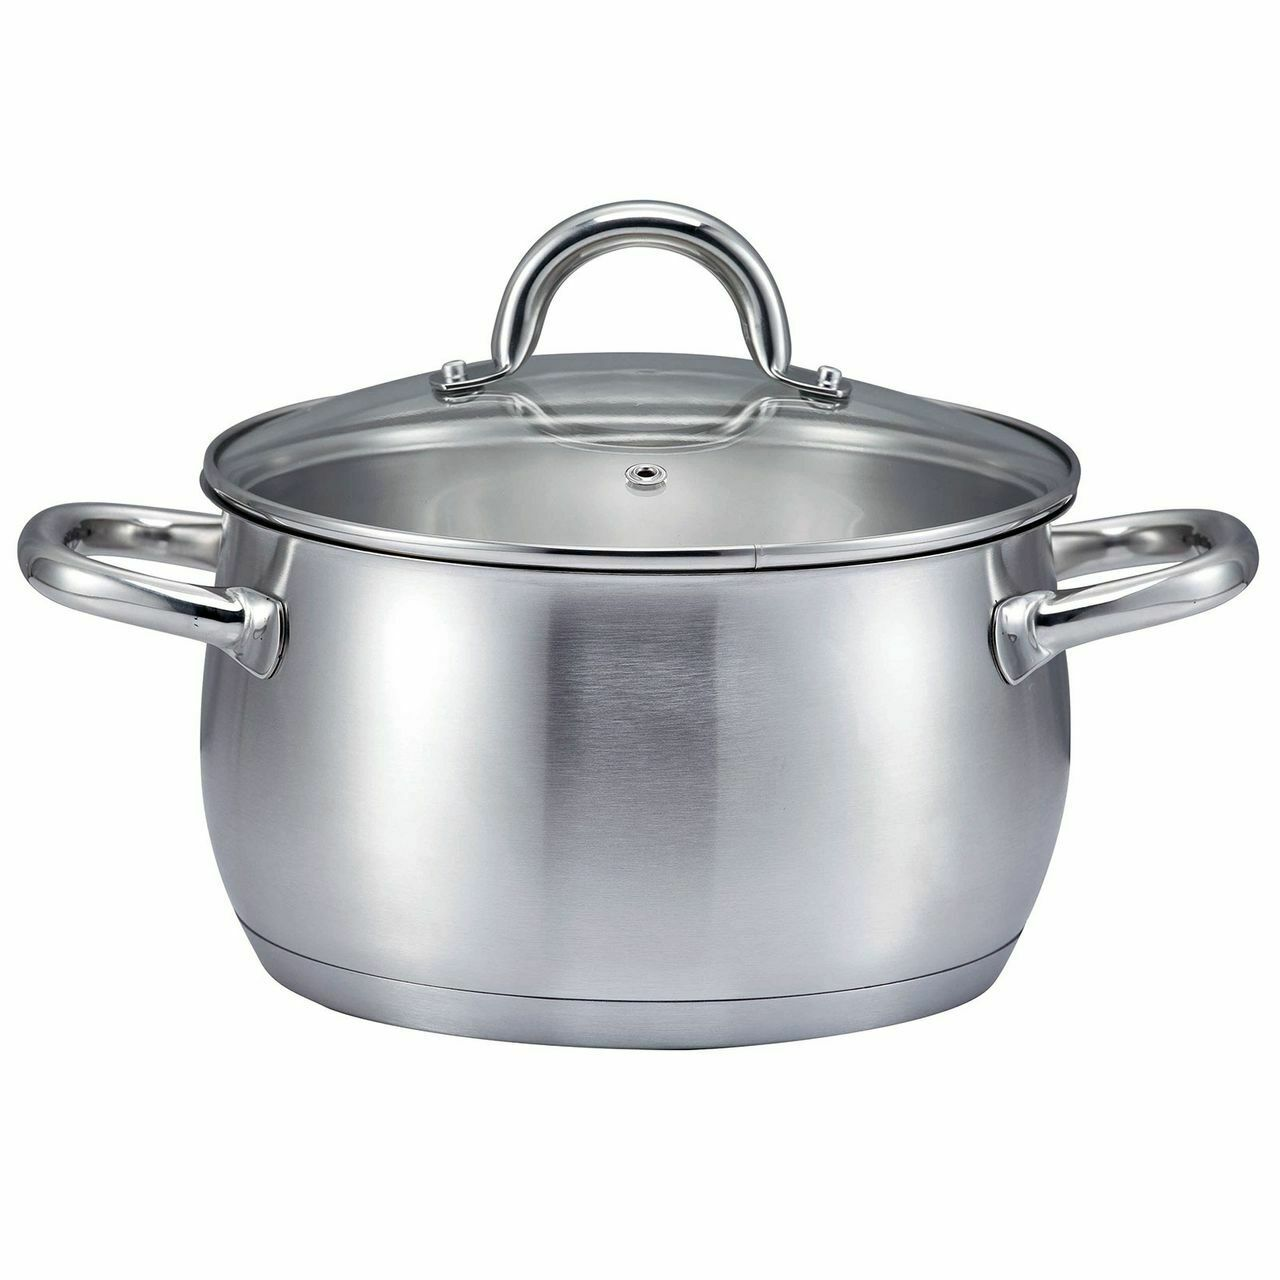 Ssw Kitchen Q pro plus Cooking Pot with Lid, Stainless Steel, Ø 20 cm, 3,6 L